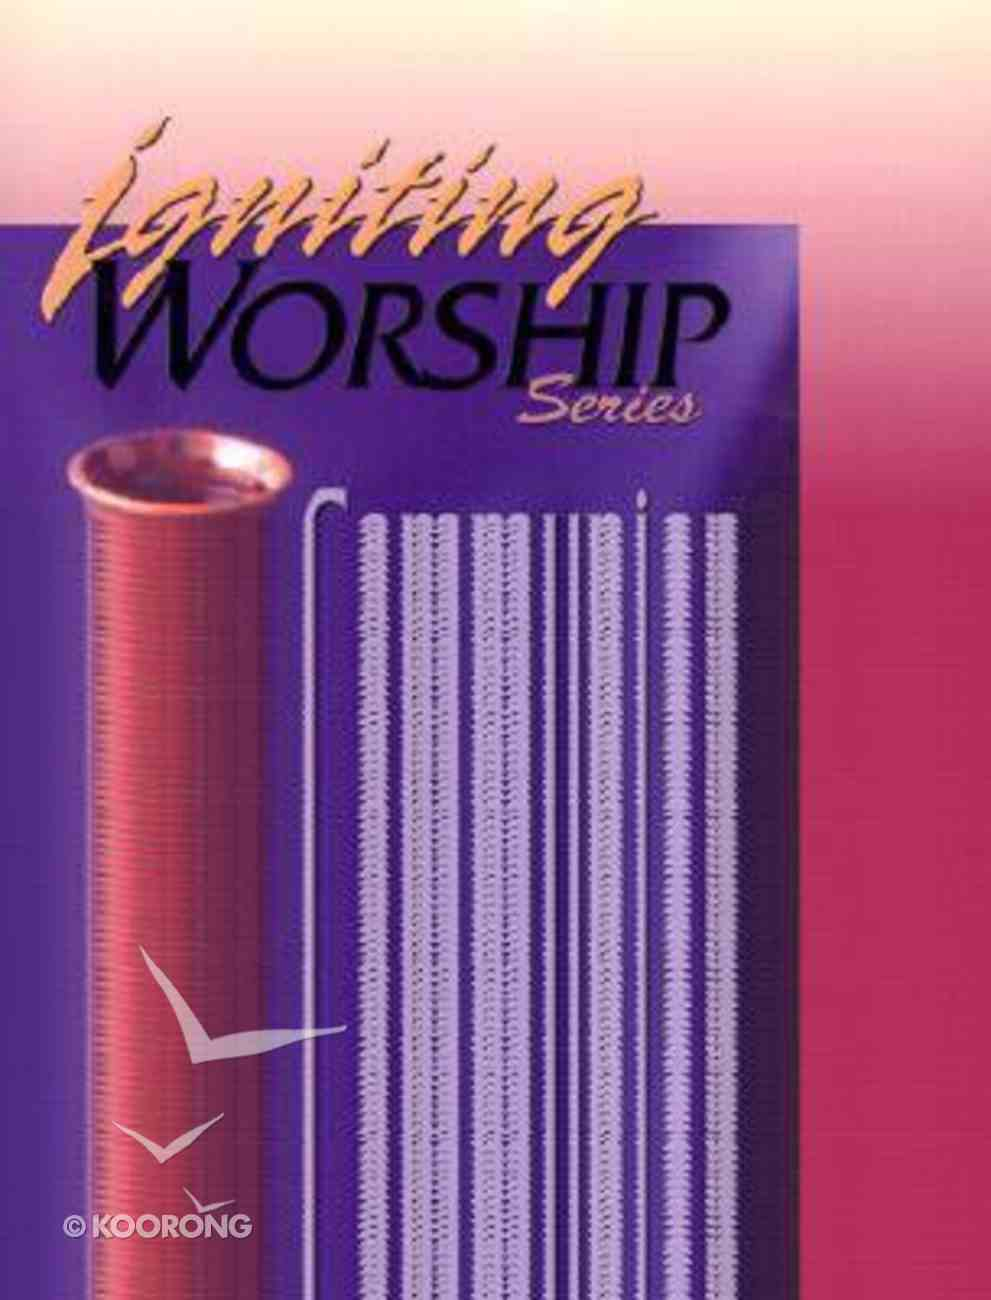 Communion (With DVD) (Igniting Worship Series) Paperback